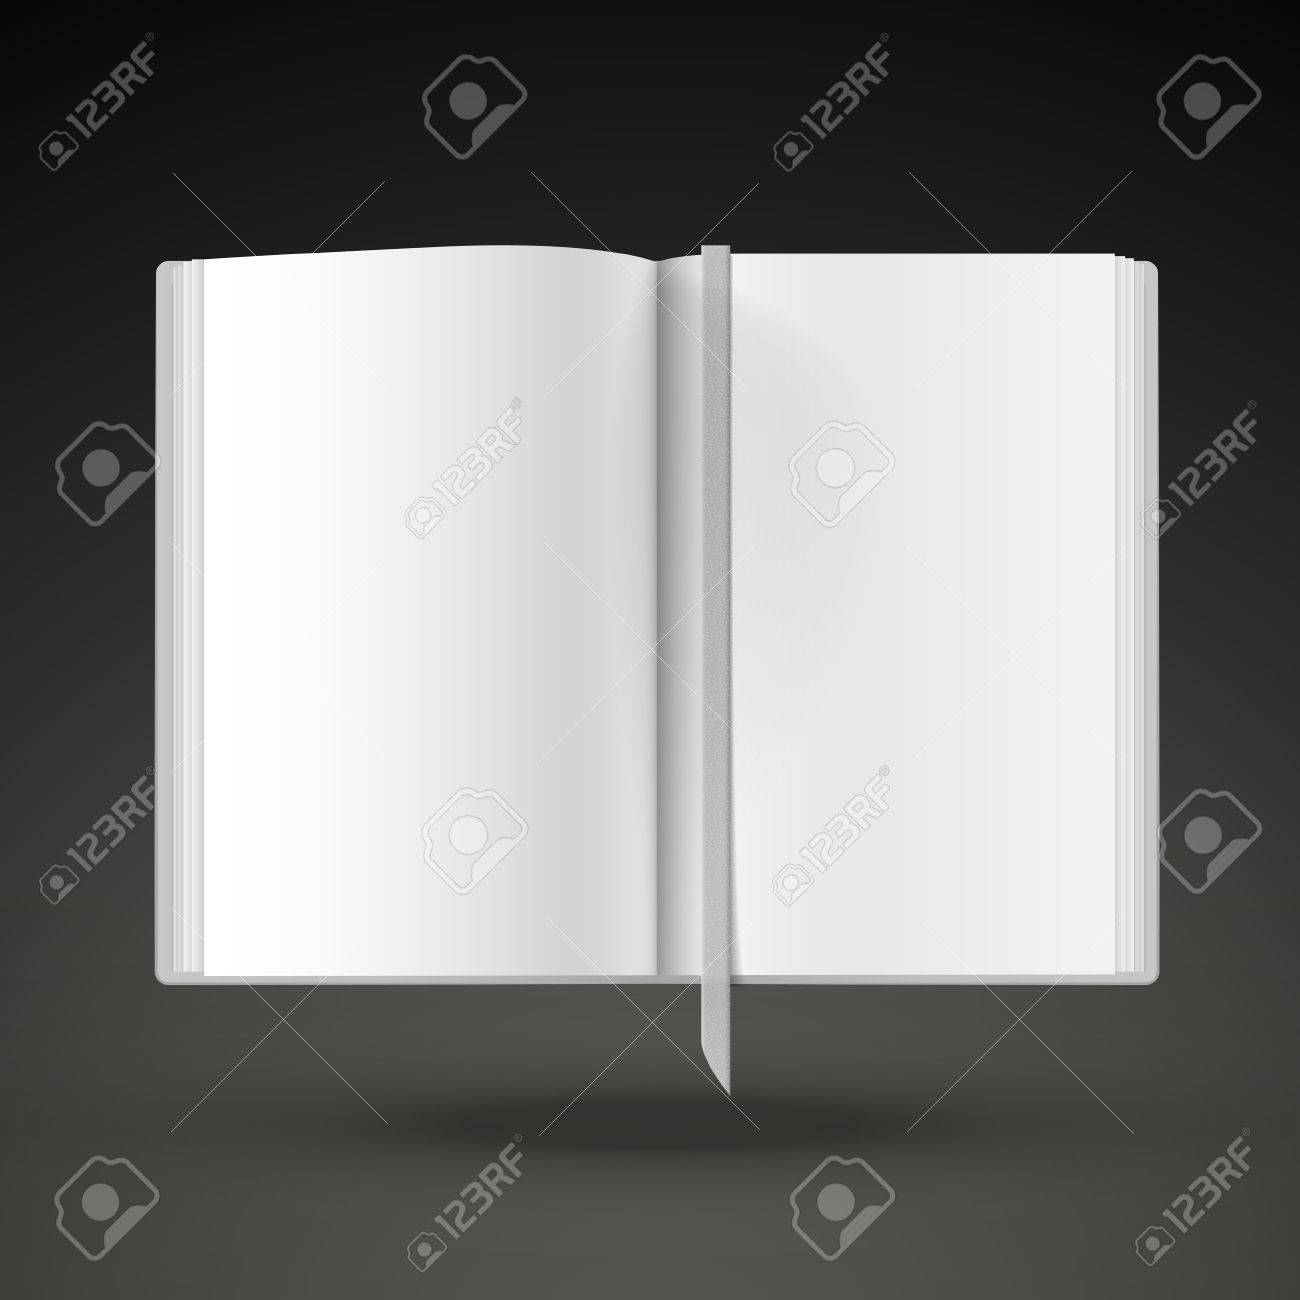 blank open book template isolated on black background royalty free